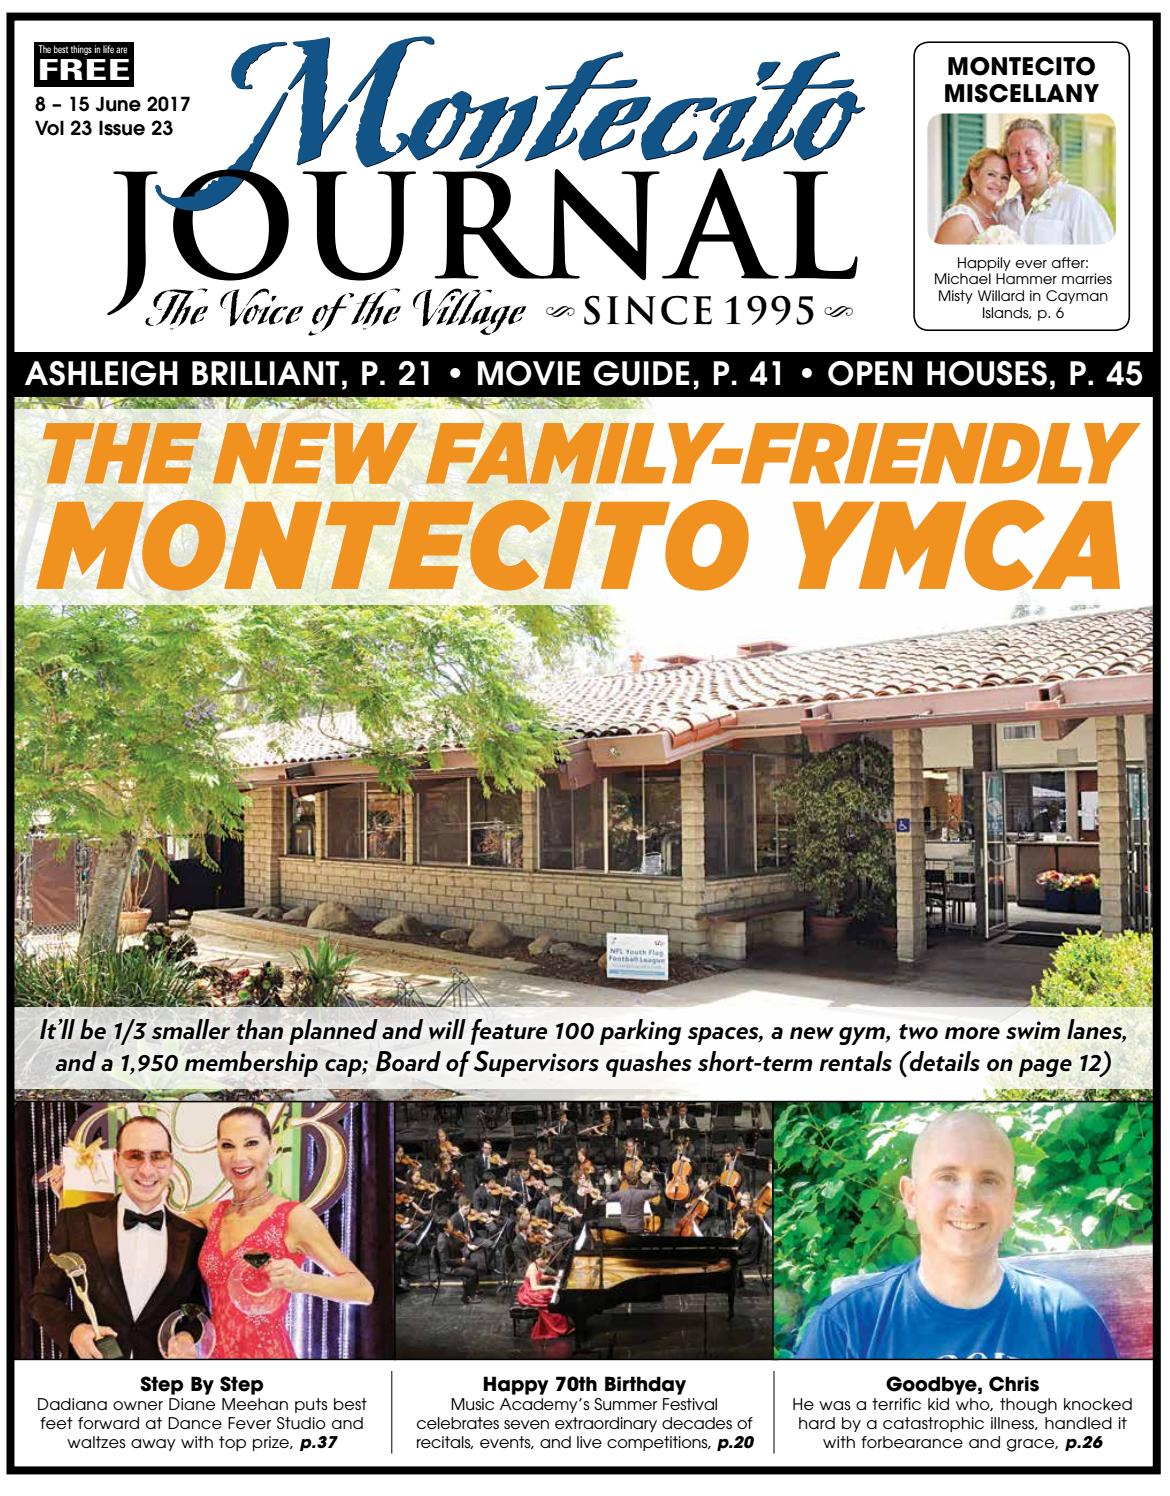 The New Family Friendly Montecito Ymca By Journal Issuu Lego Birthday Party Fox Trot Feet Dance Steps Diagram Free Download